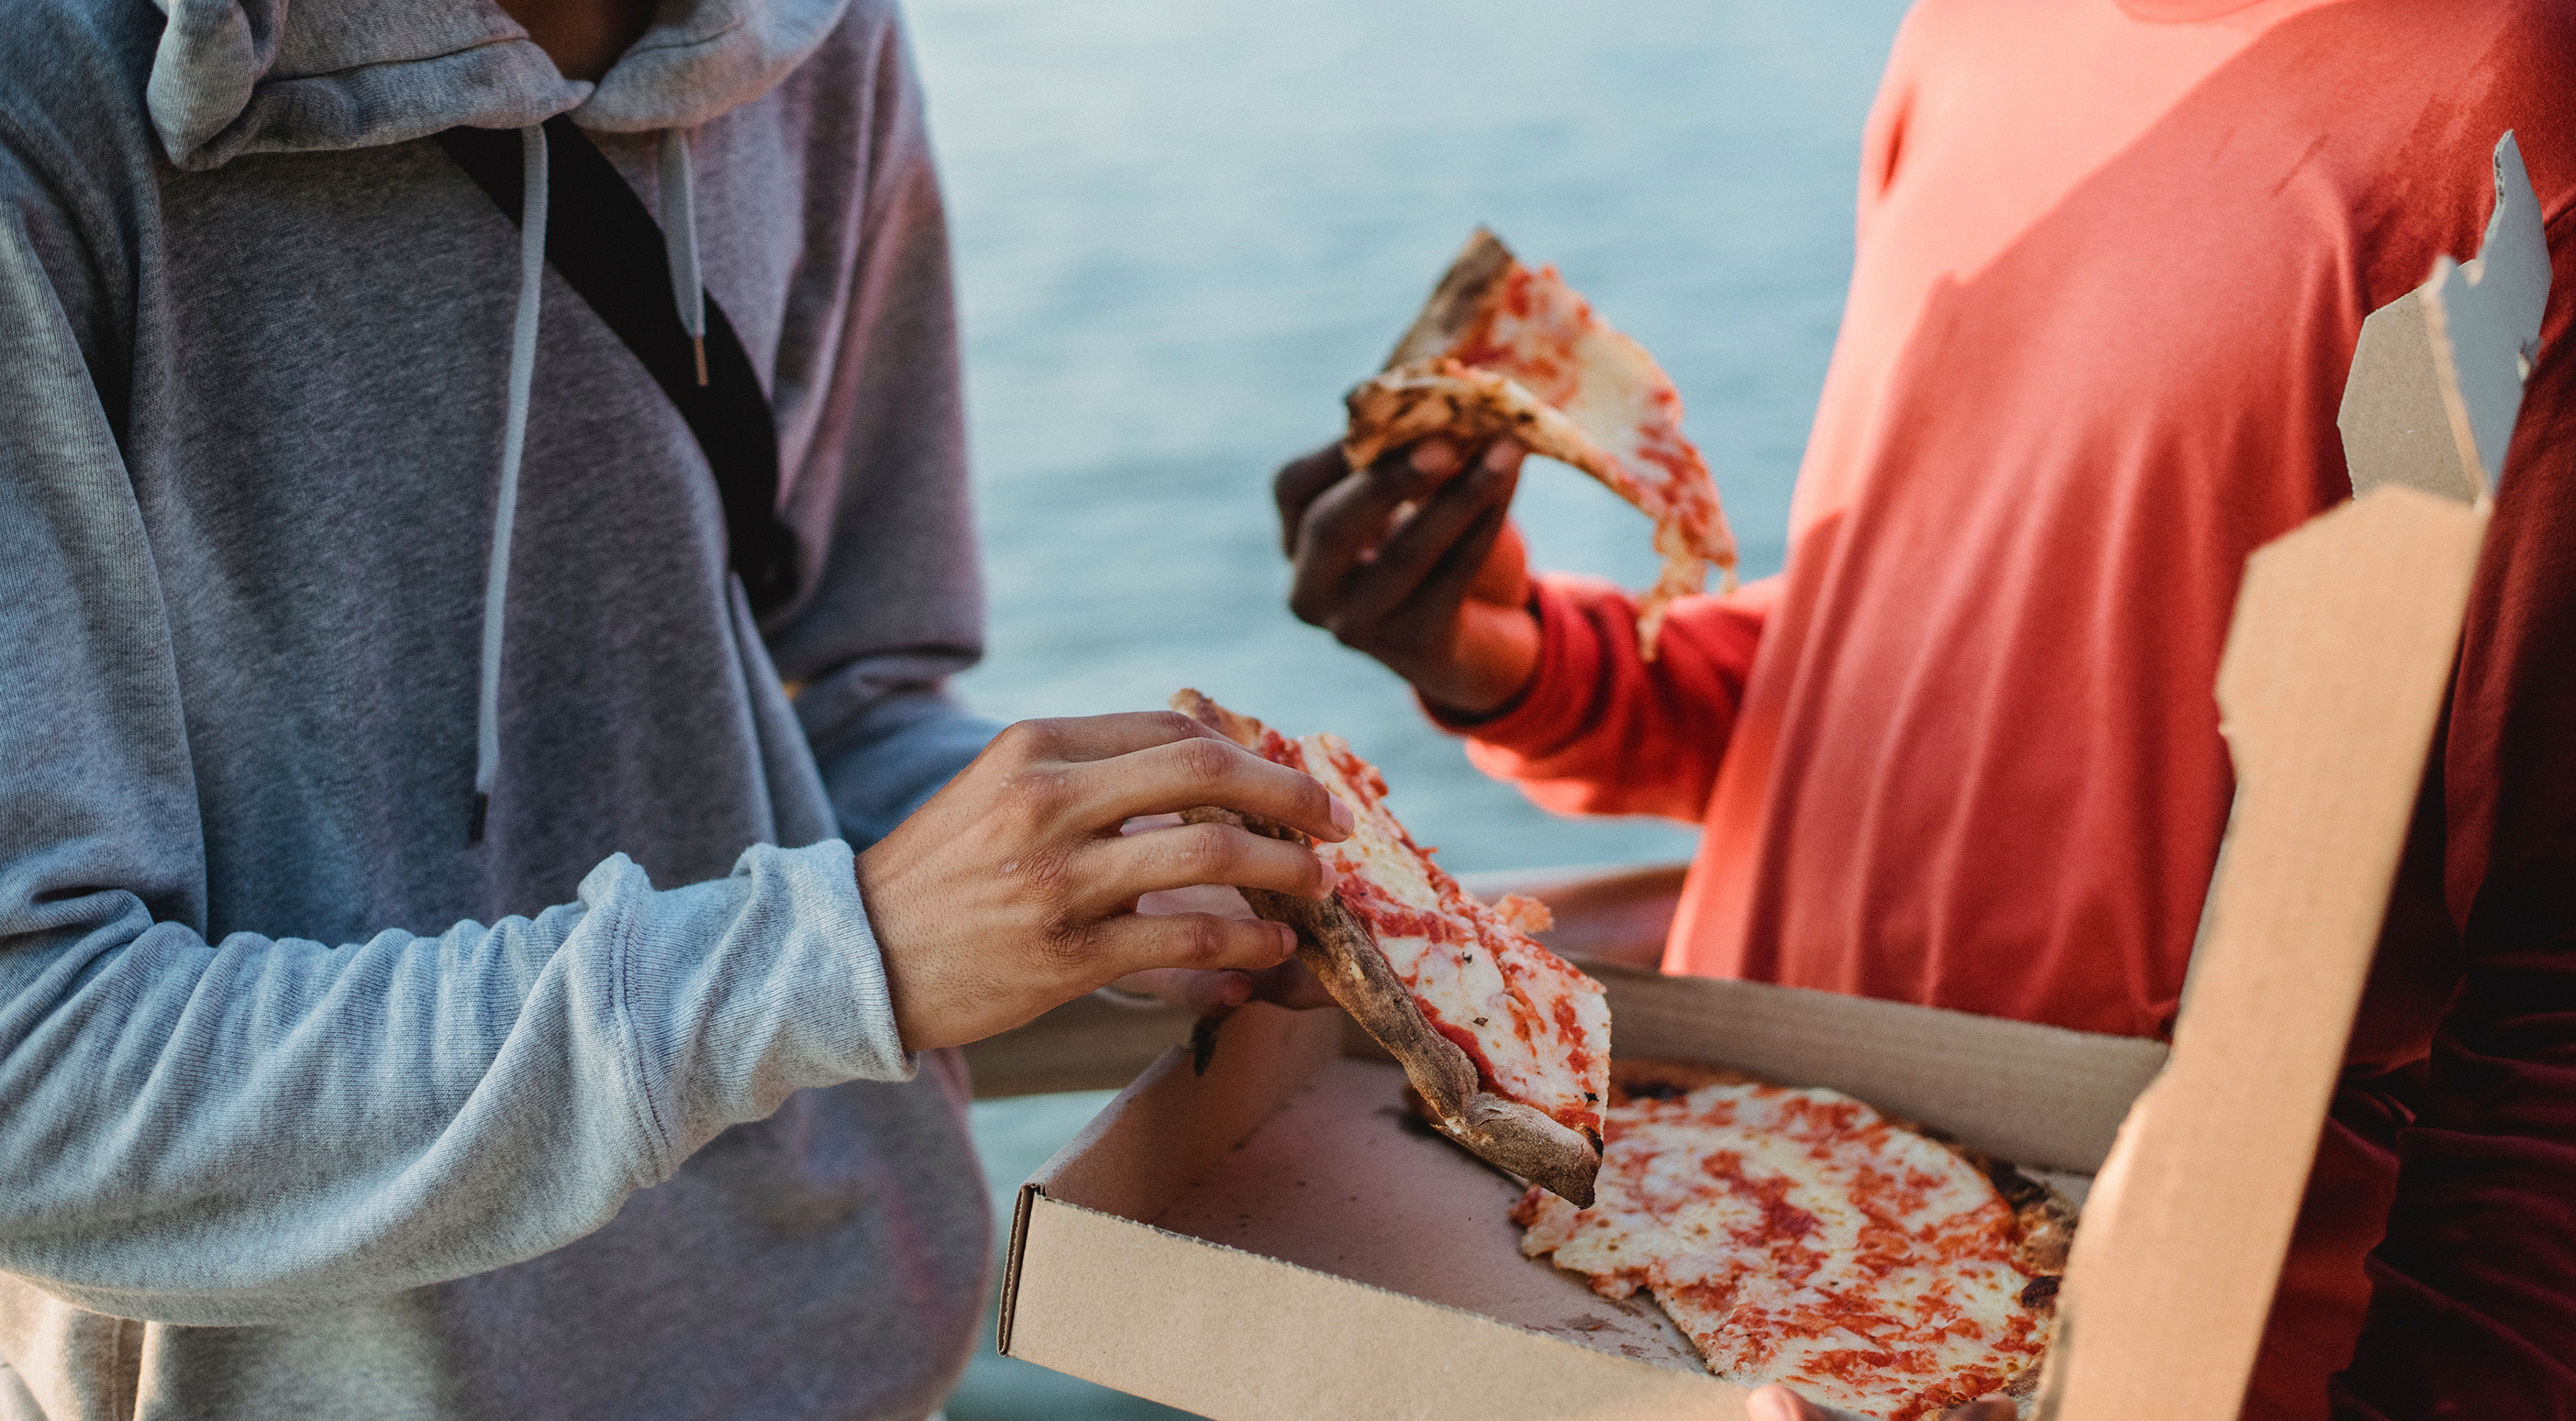 Two friends sharing a pizza outside